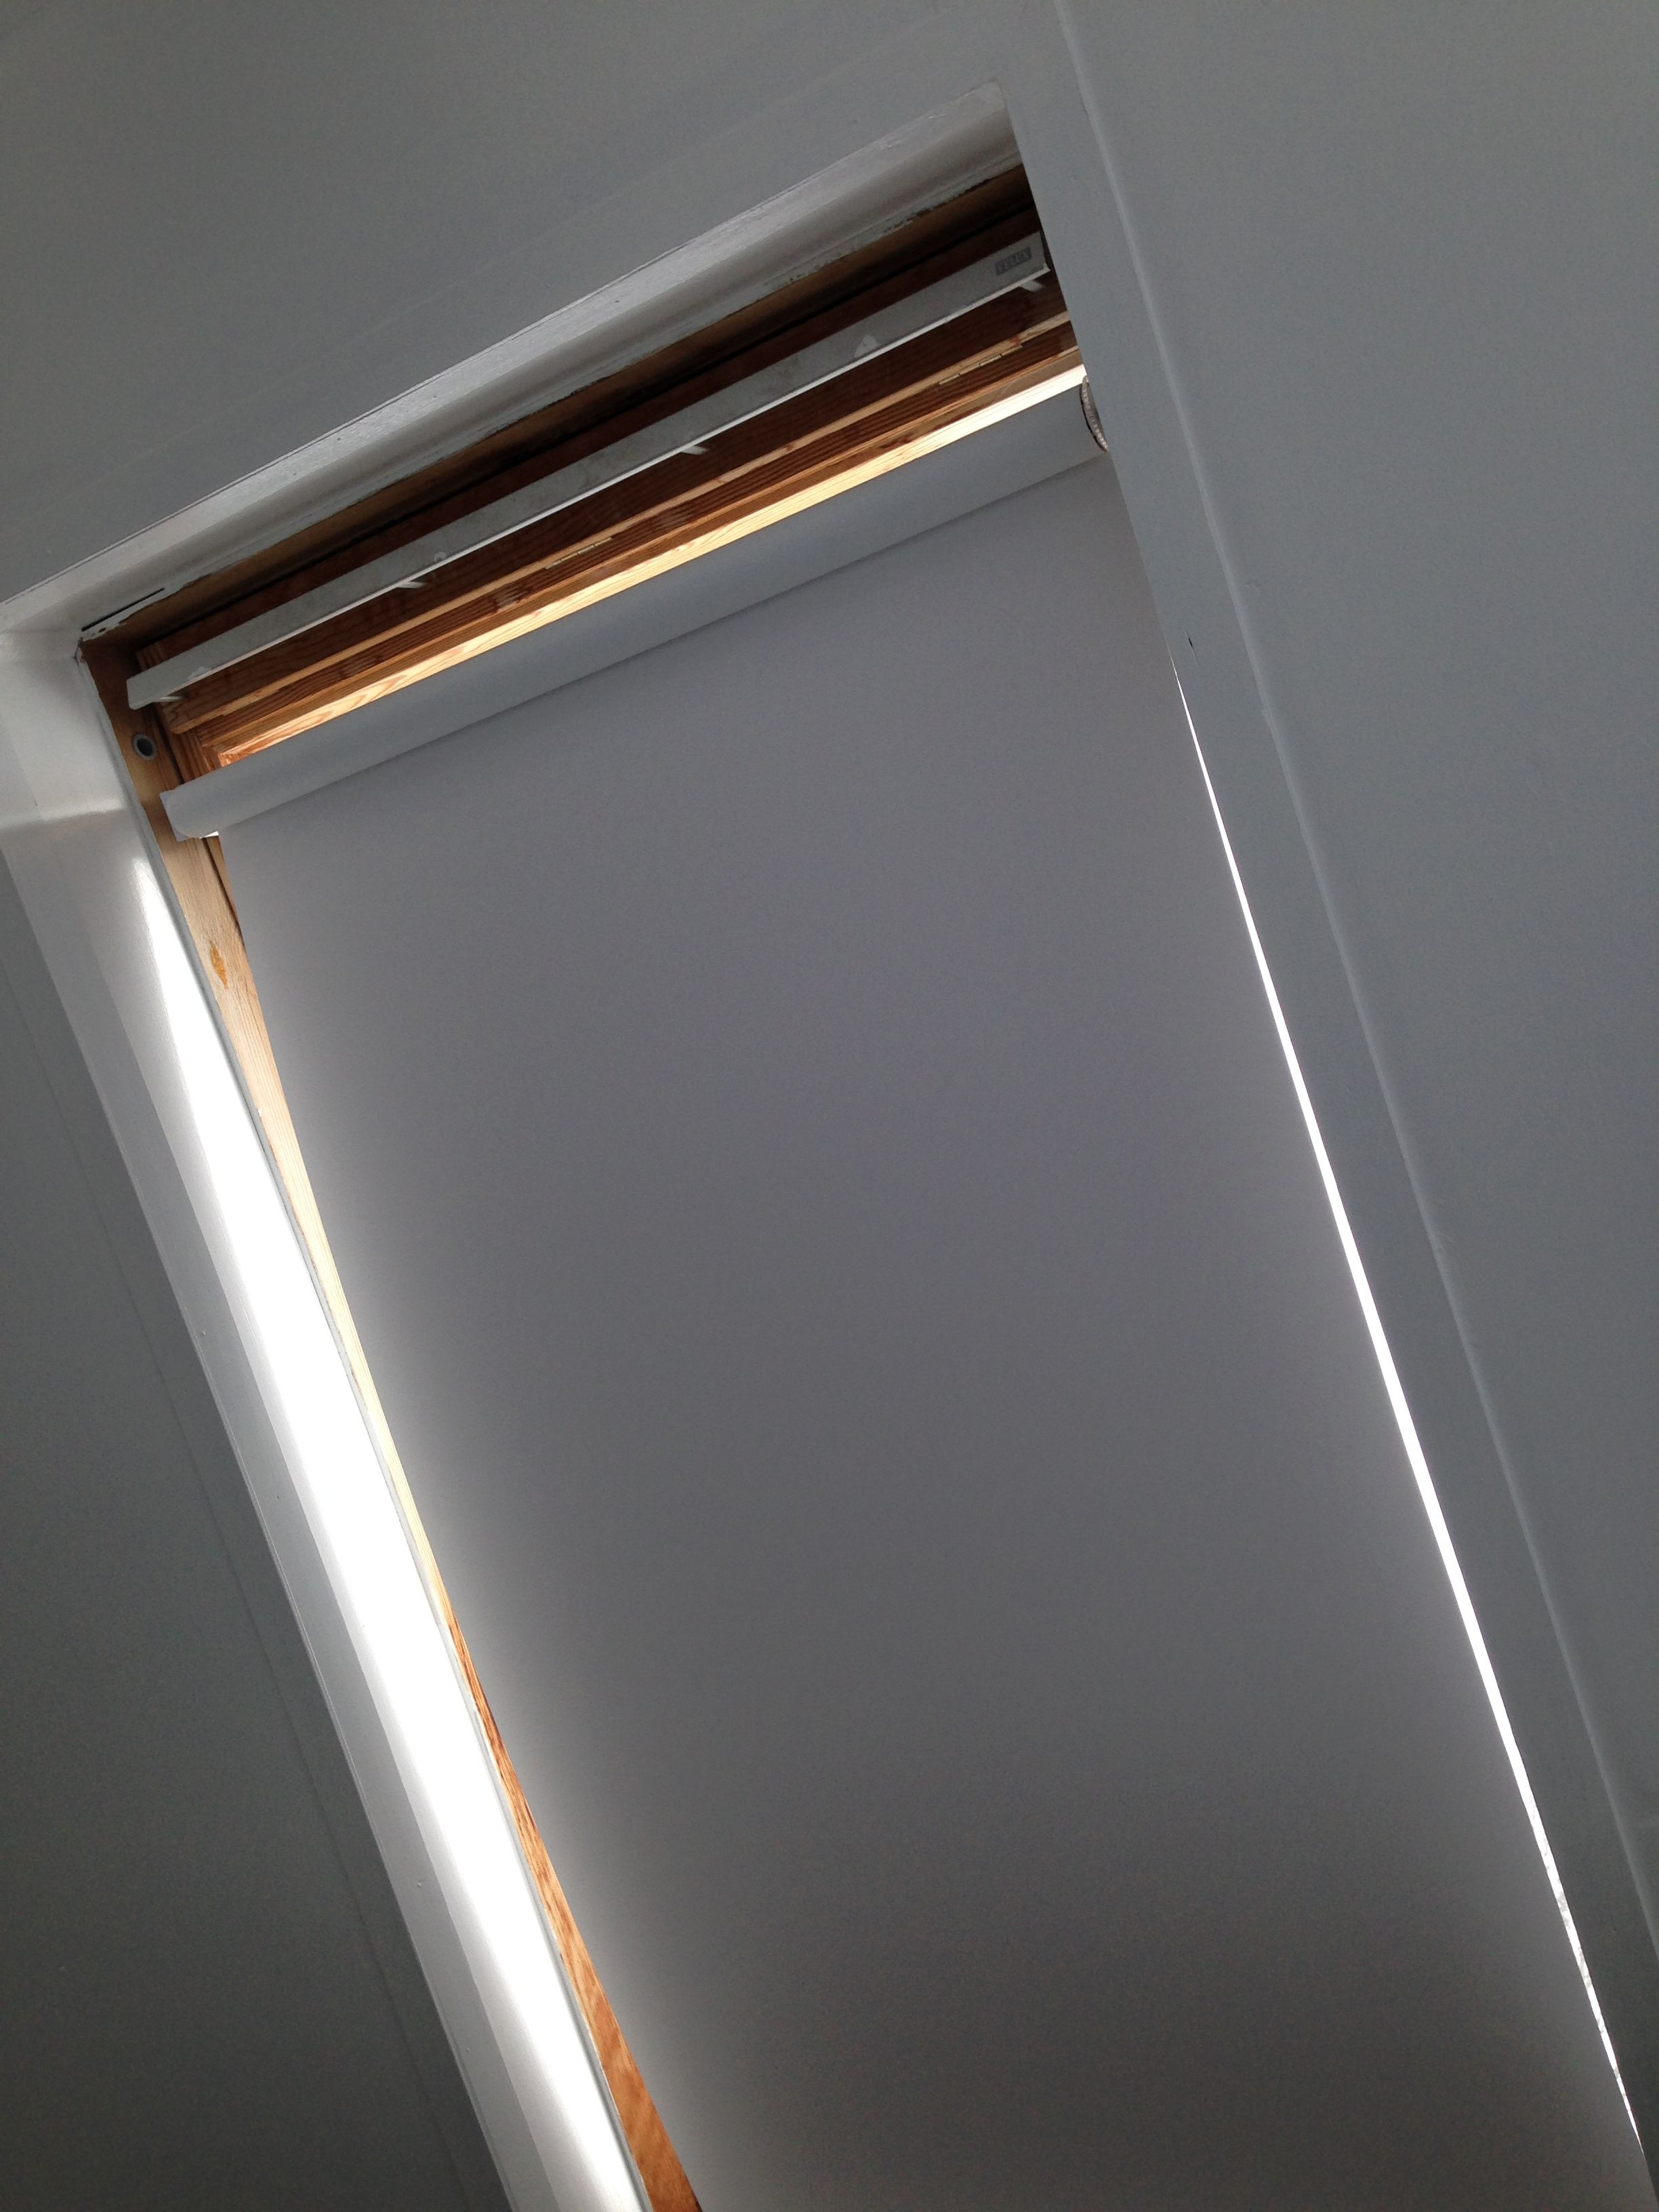 shades interesting image blinds design inviting and intended incredible for the designs home covers skylight